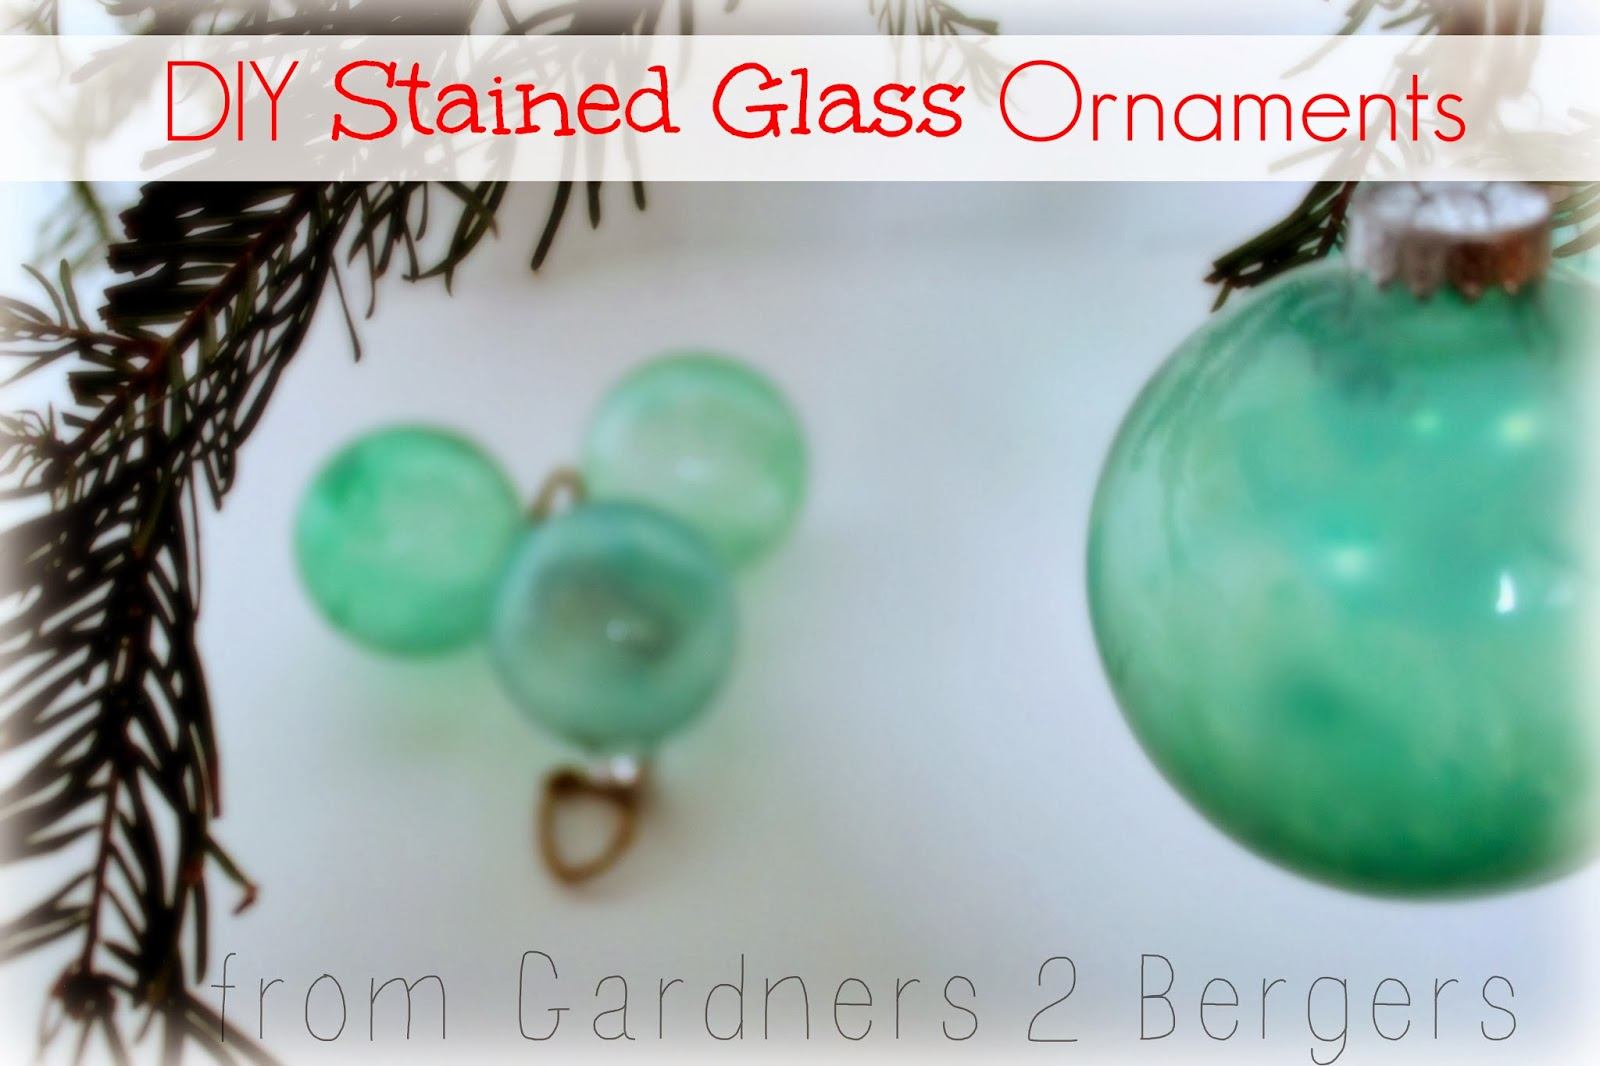 DIY-Stained-Colored-Glass-Ornaments